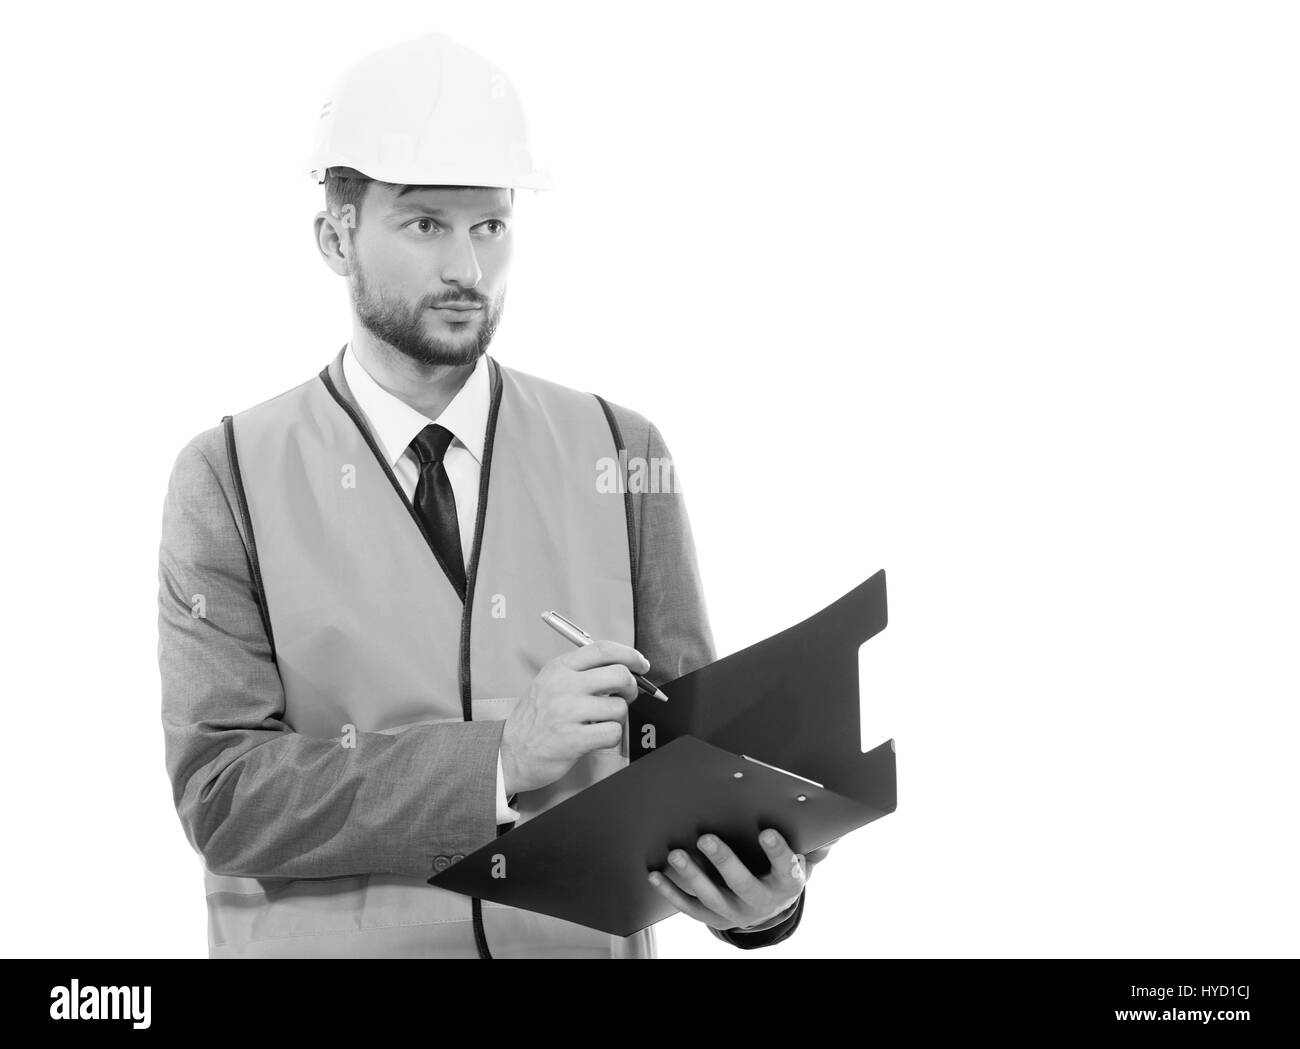 Male architect in a safety west and a hardhat writing on his cli - Stock Image